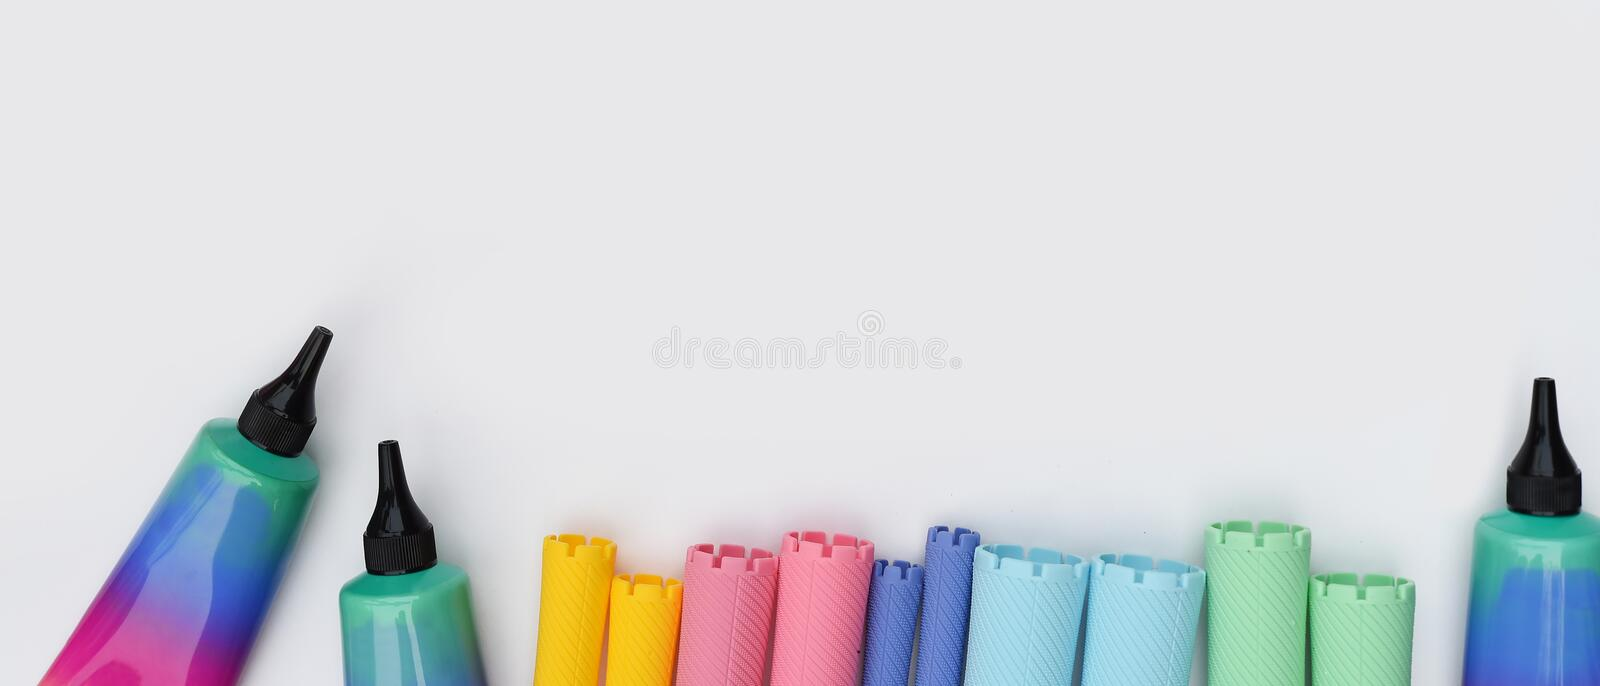 Close up of hair curlers stock images